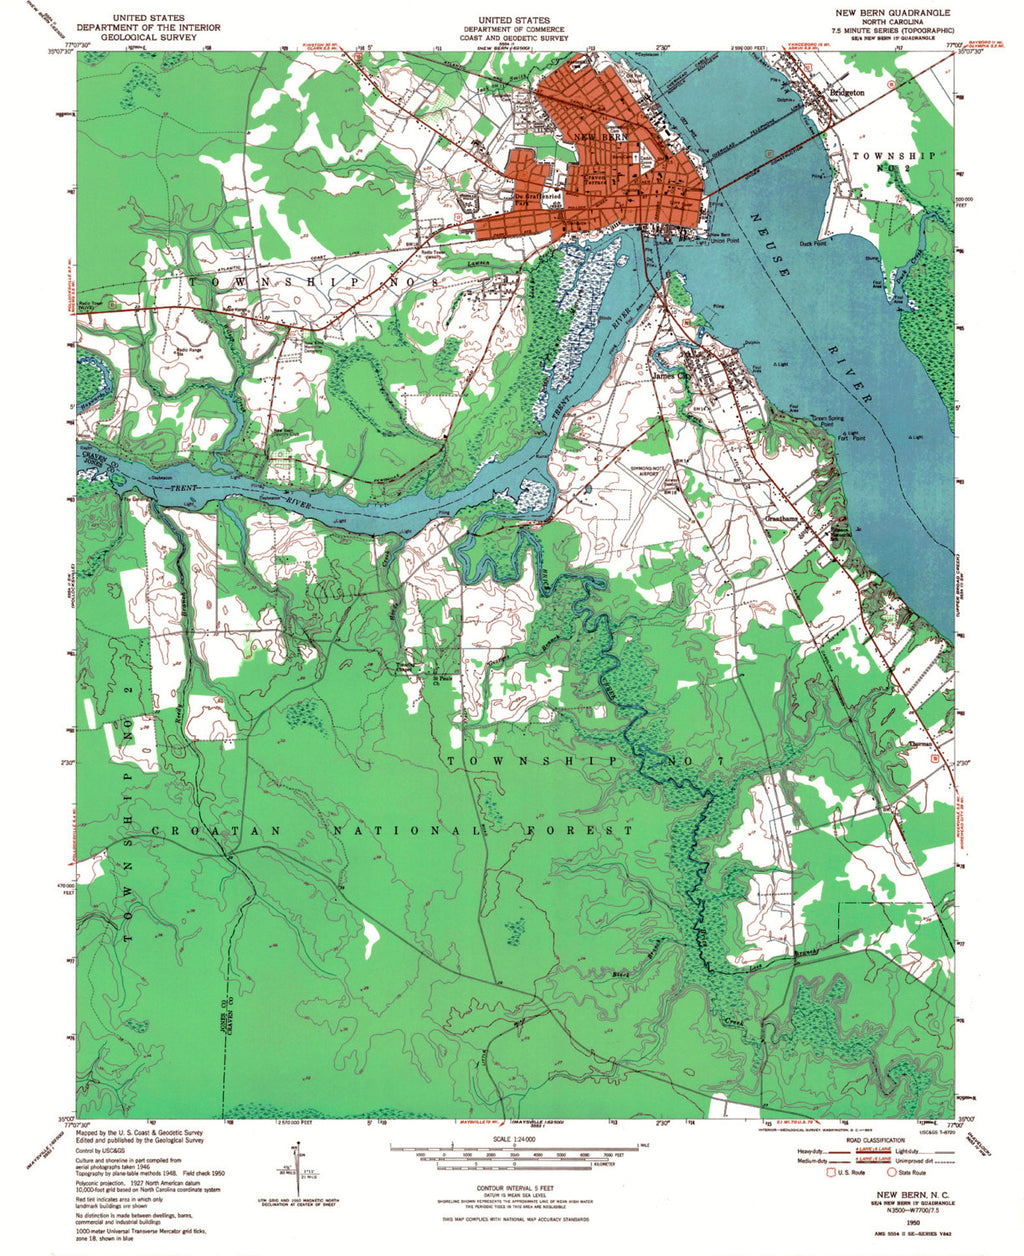 New Bern North Carolina Map Art - ParMar Media - 2